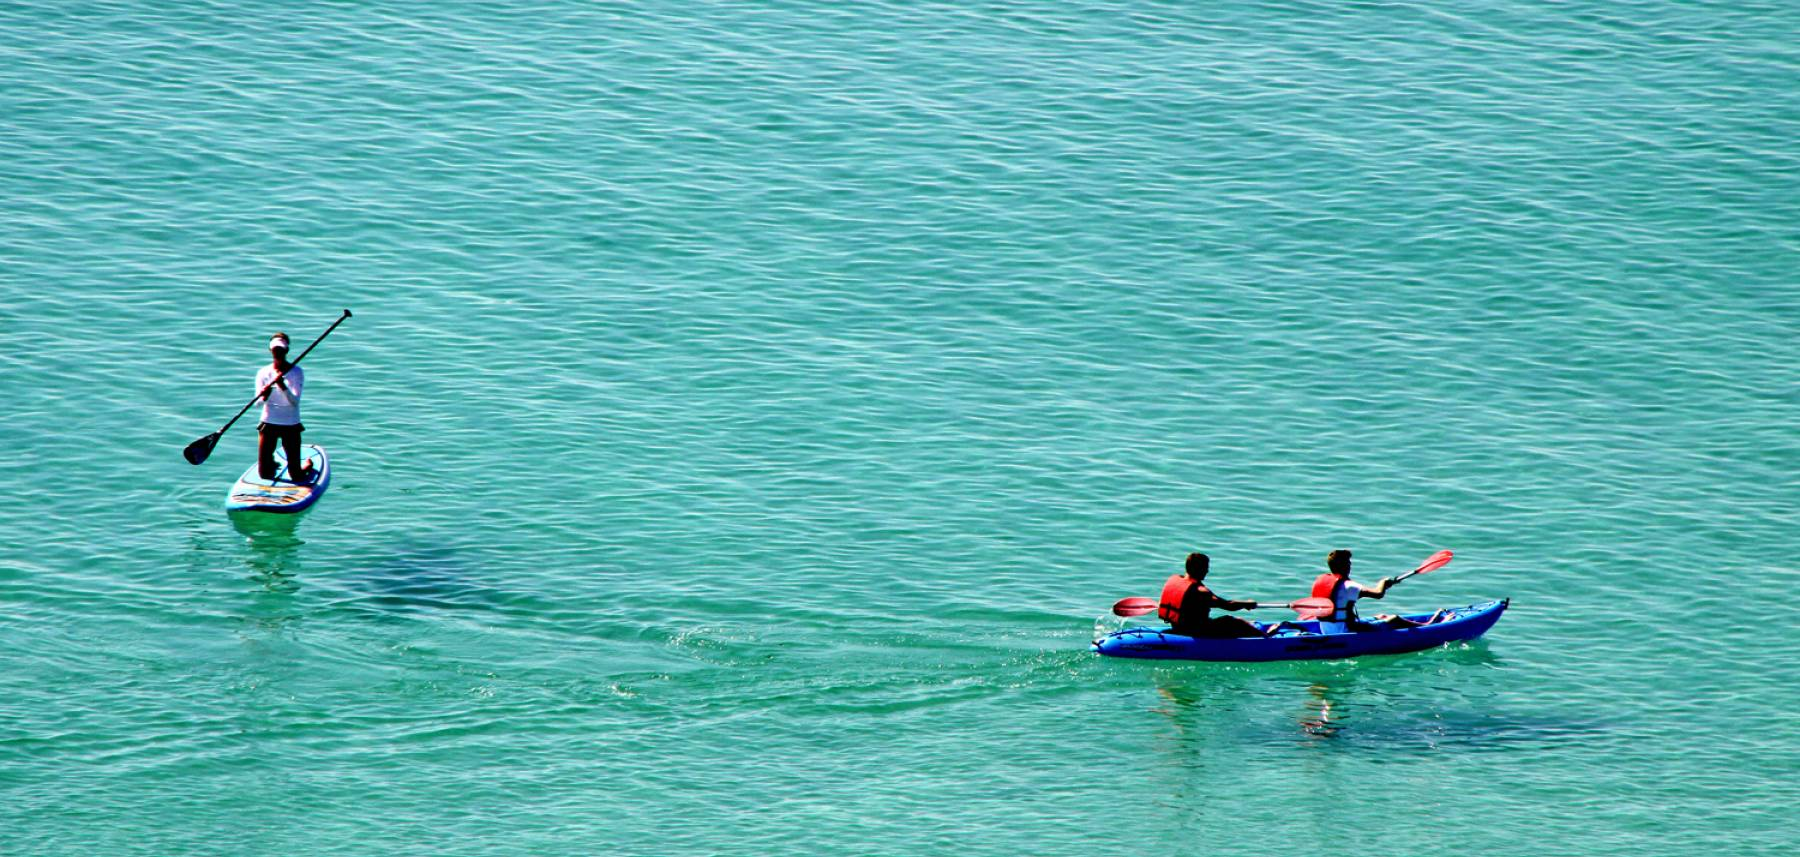 Boats in the Gulf of Mexico along the shores of Destin